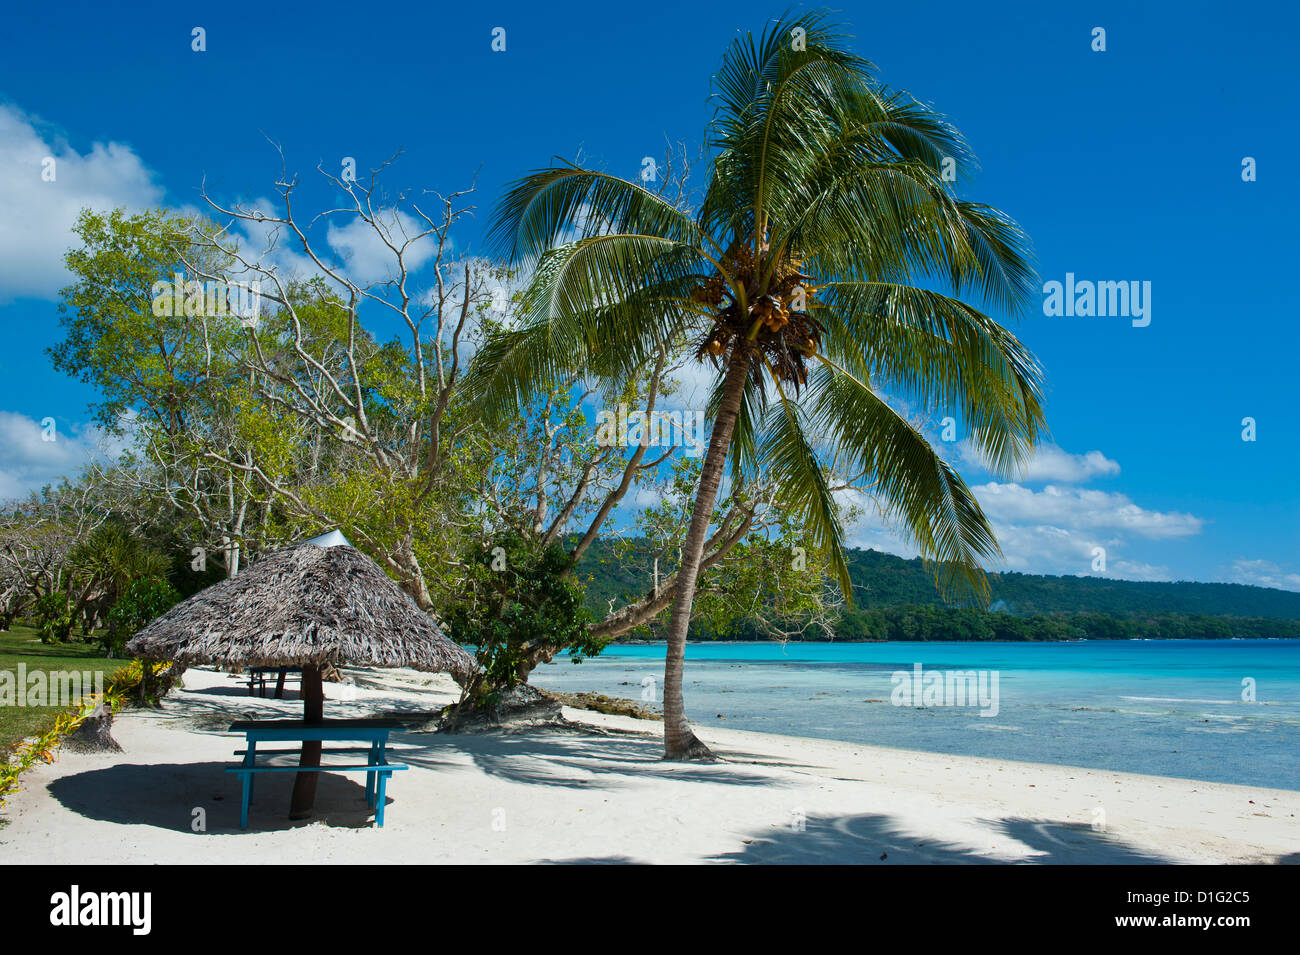 Beach Hut At Champagne Beach Island Of Espiritu Santo Vanuatu Stock Photo Alamy